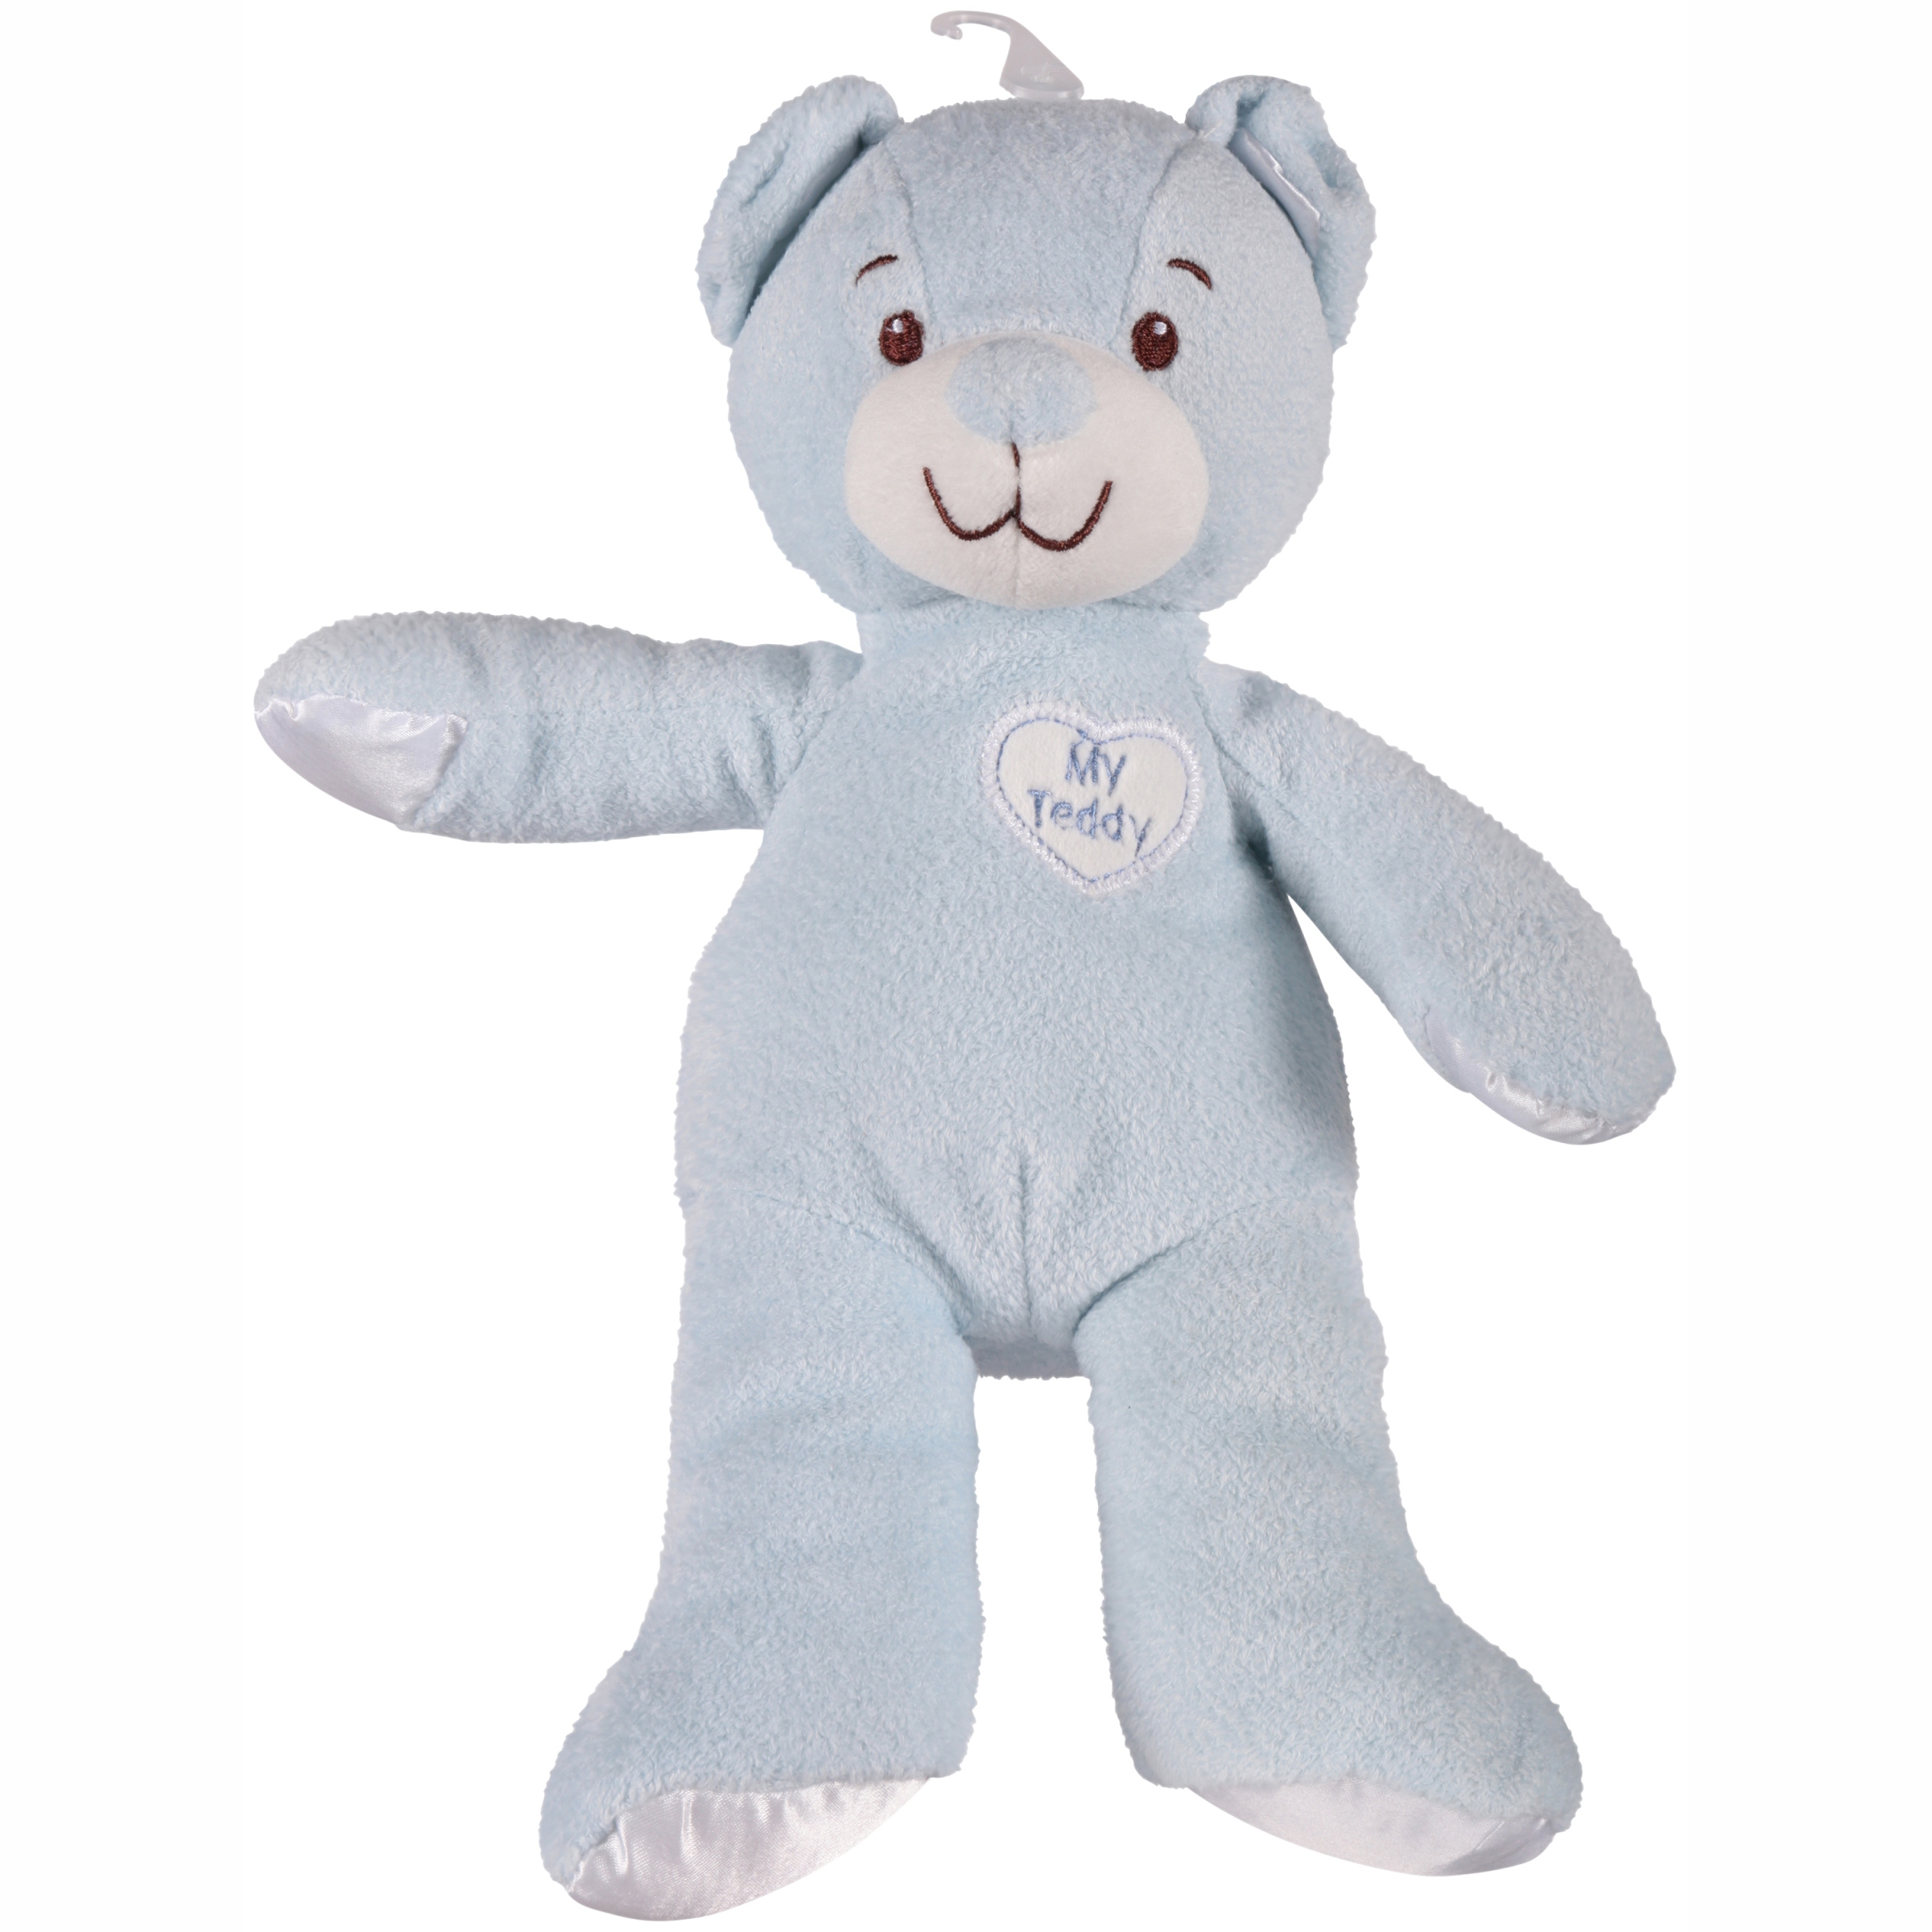 Kids Preferred Healthy Baby Teddy Bear by Kids Preferred